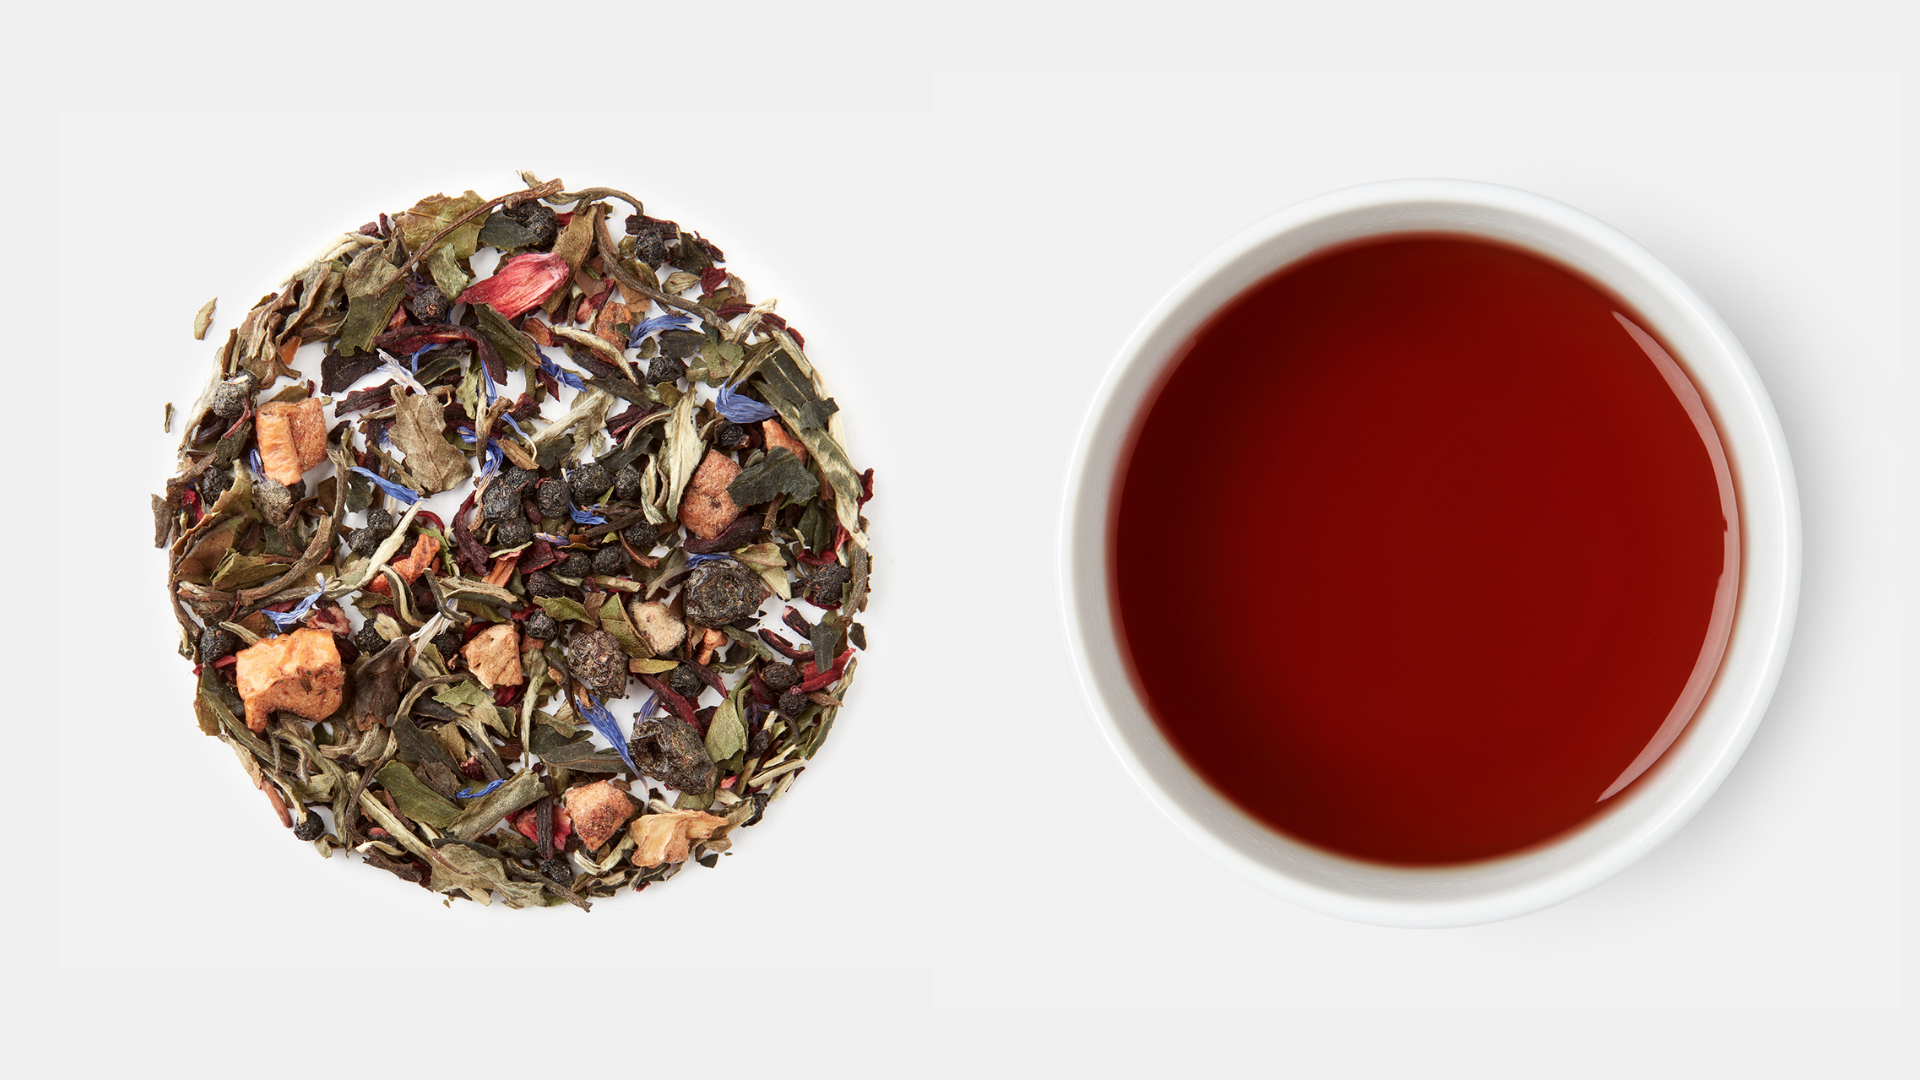 Blink Tea Blueberry White Peony Tea Leaf and Liquor